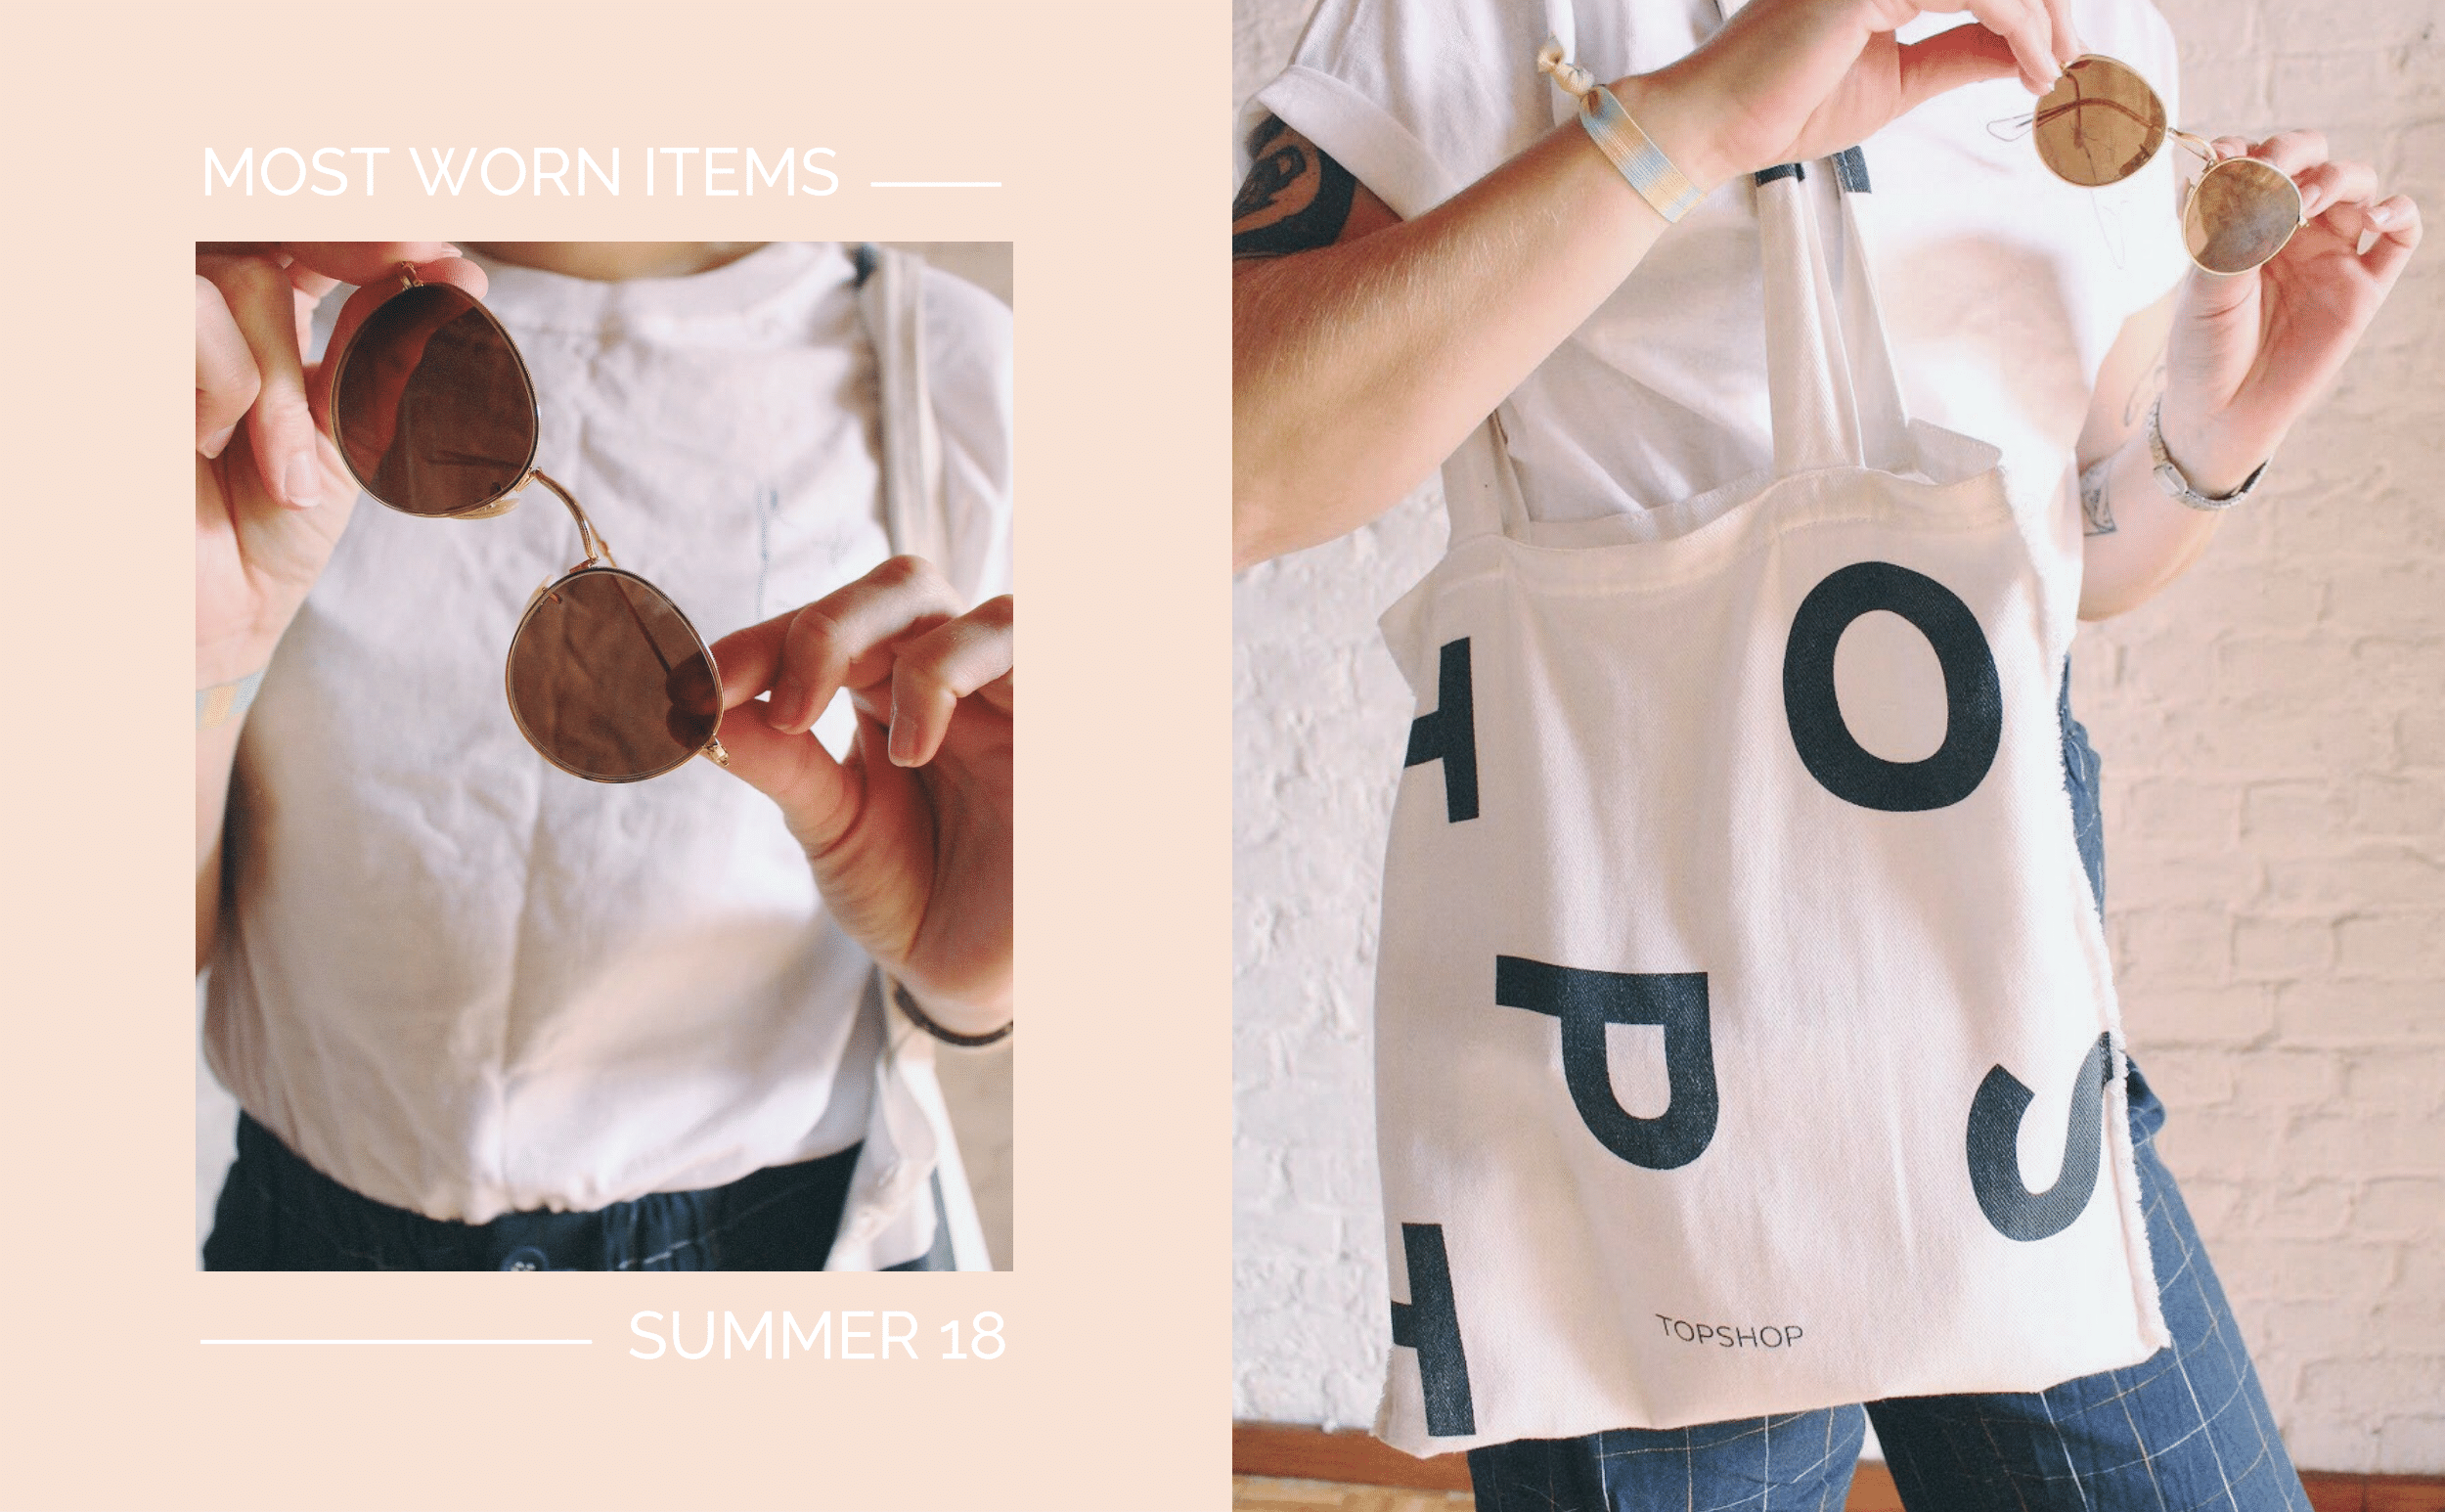 pretty naive | Most worn items this Summer